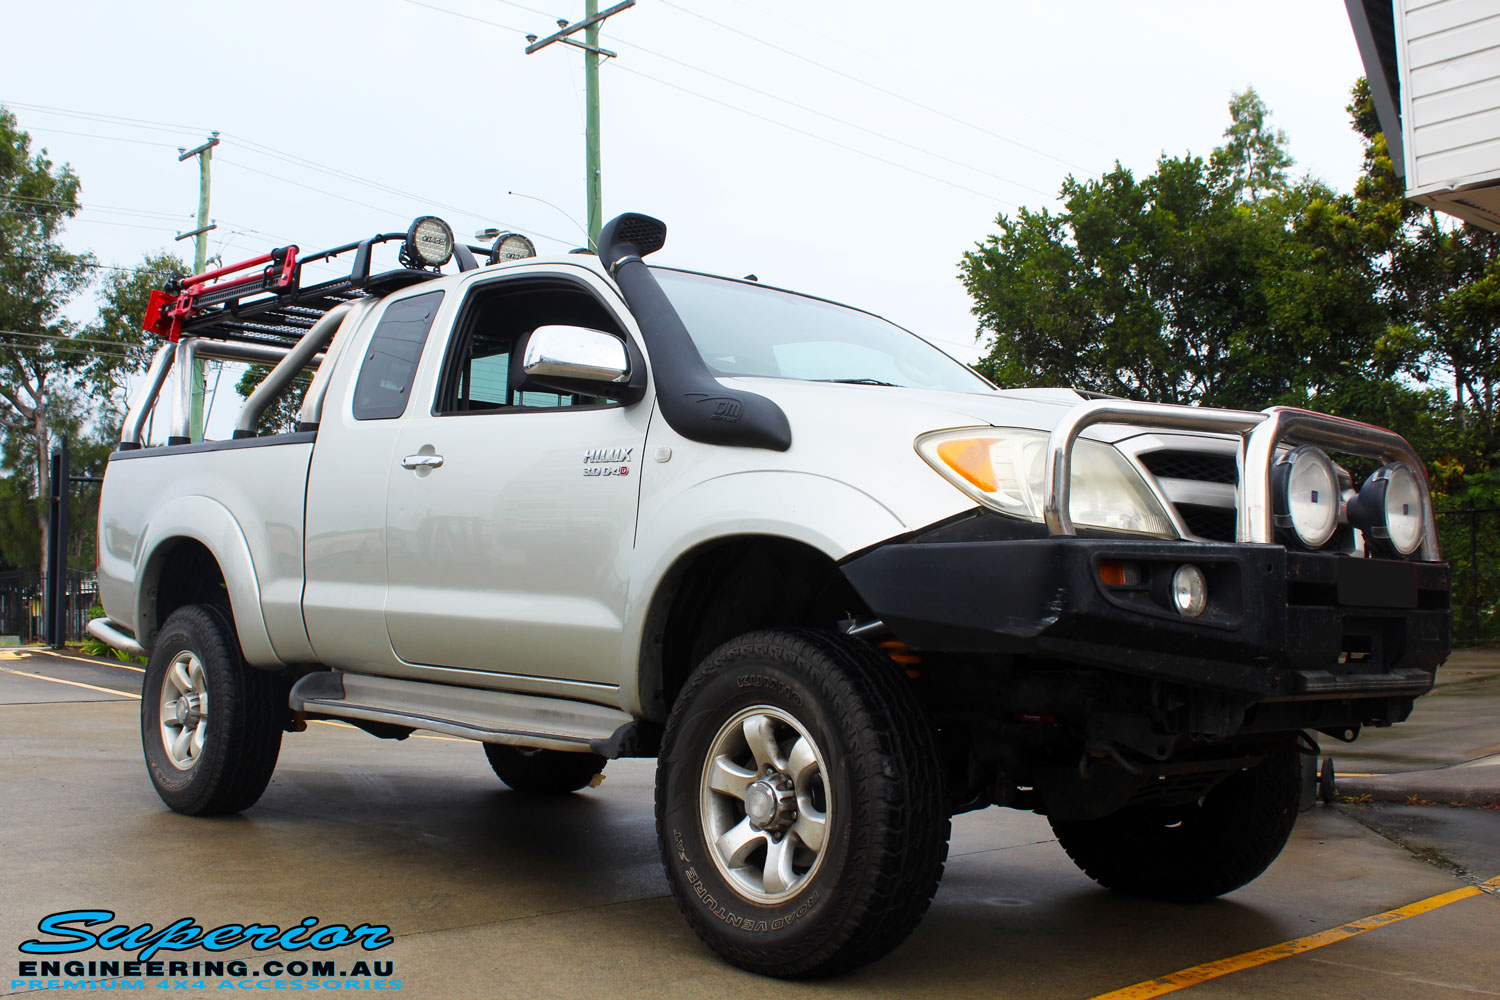 "Right front side view of this Toyota Vigo Hilux Xtra Cab after fitment of a Bilstein 4"" Inch Lift Kit"